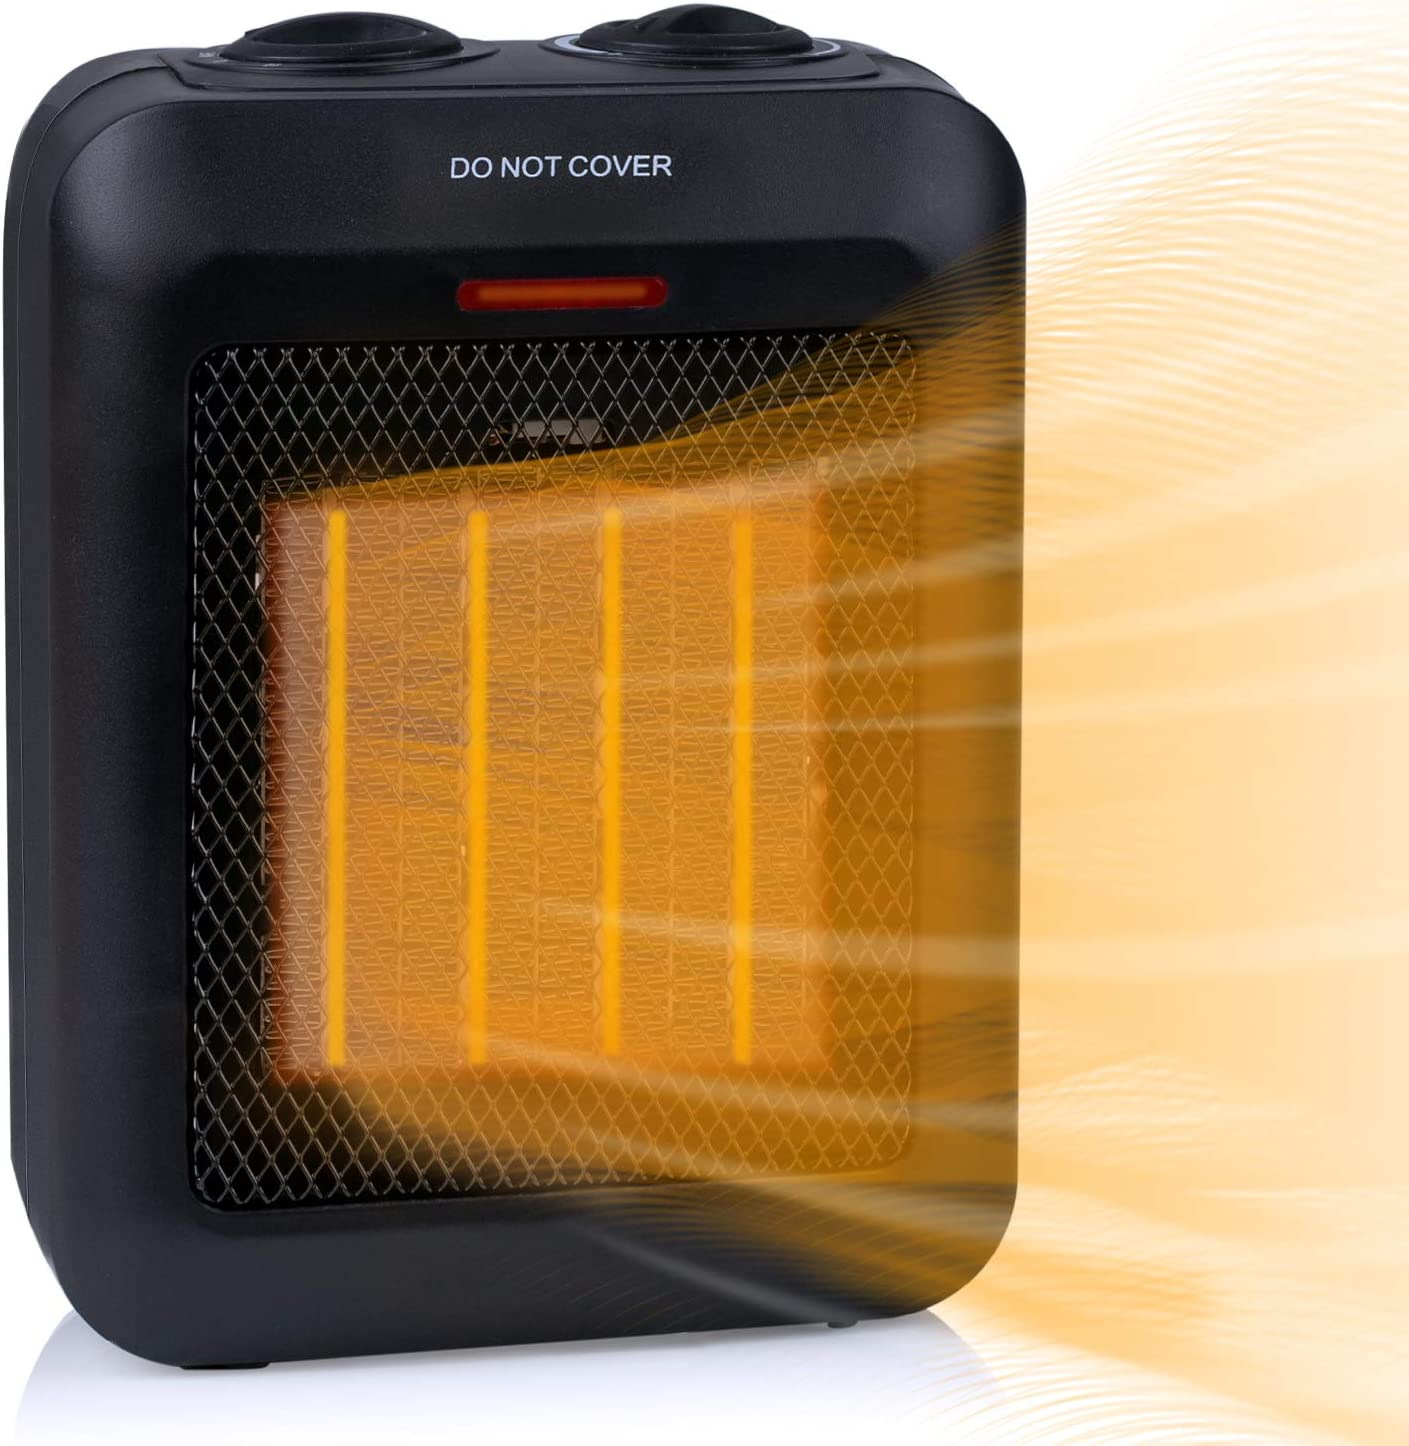 750W/1500W Portable Ceramic Space Heater with Overheats and Tip Over Protection, Electric Room Heater with Adjustable Thermostat